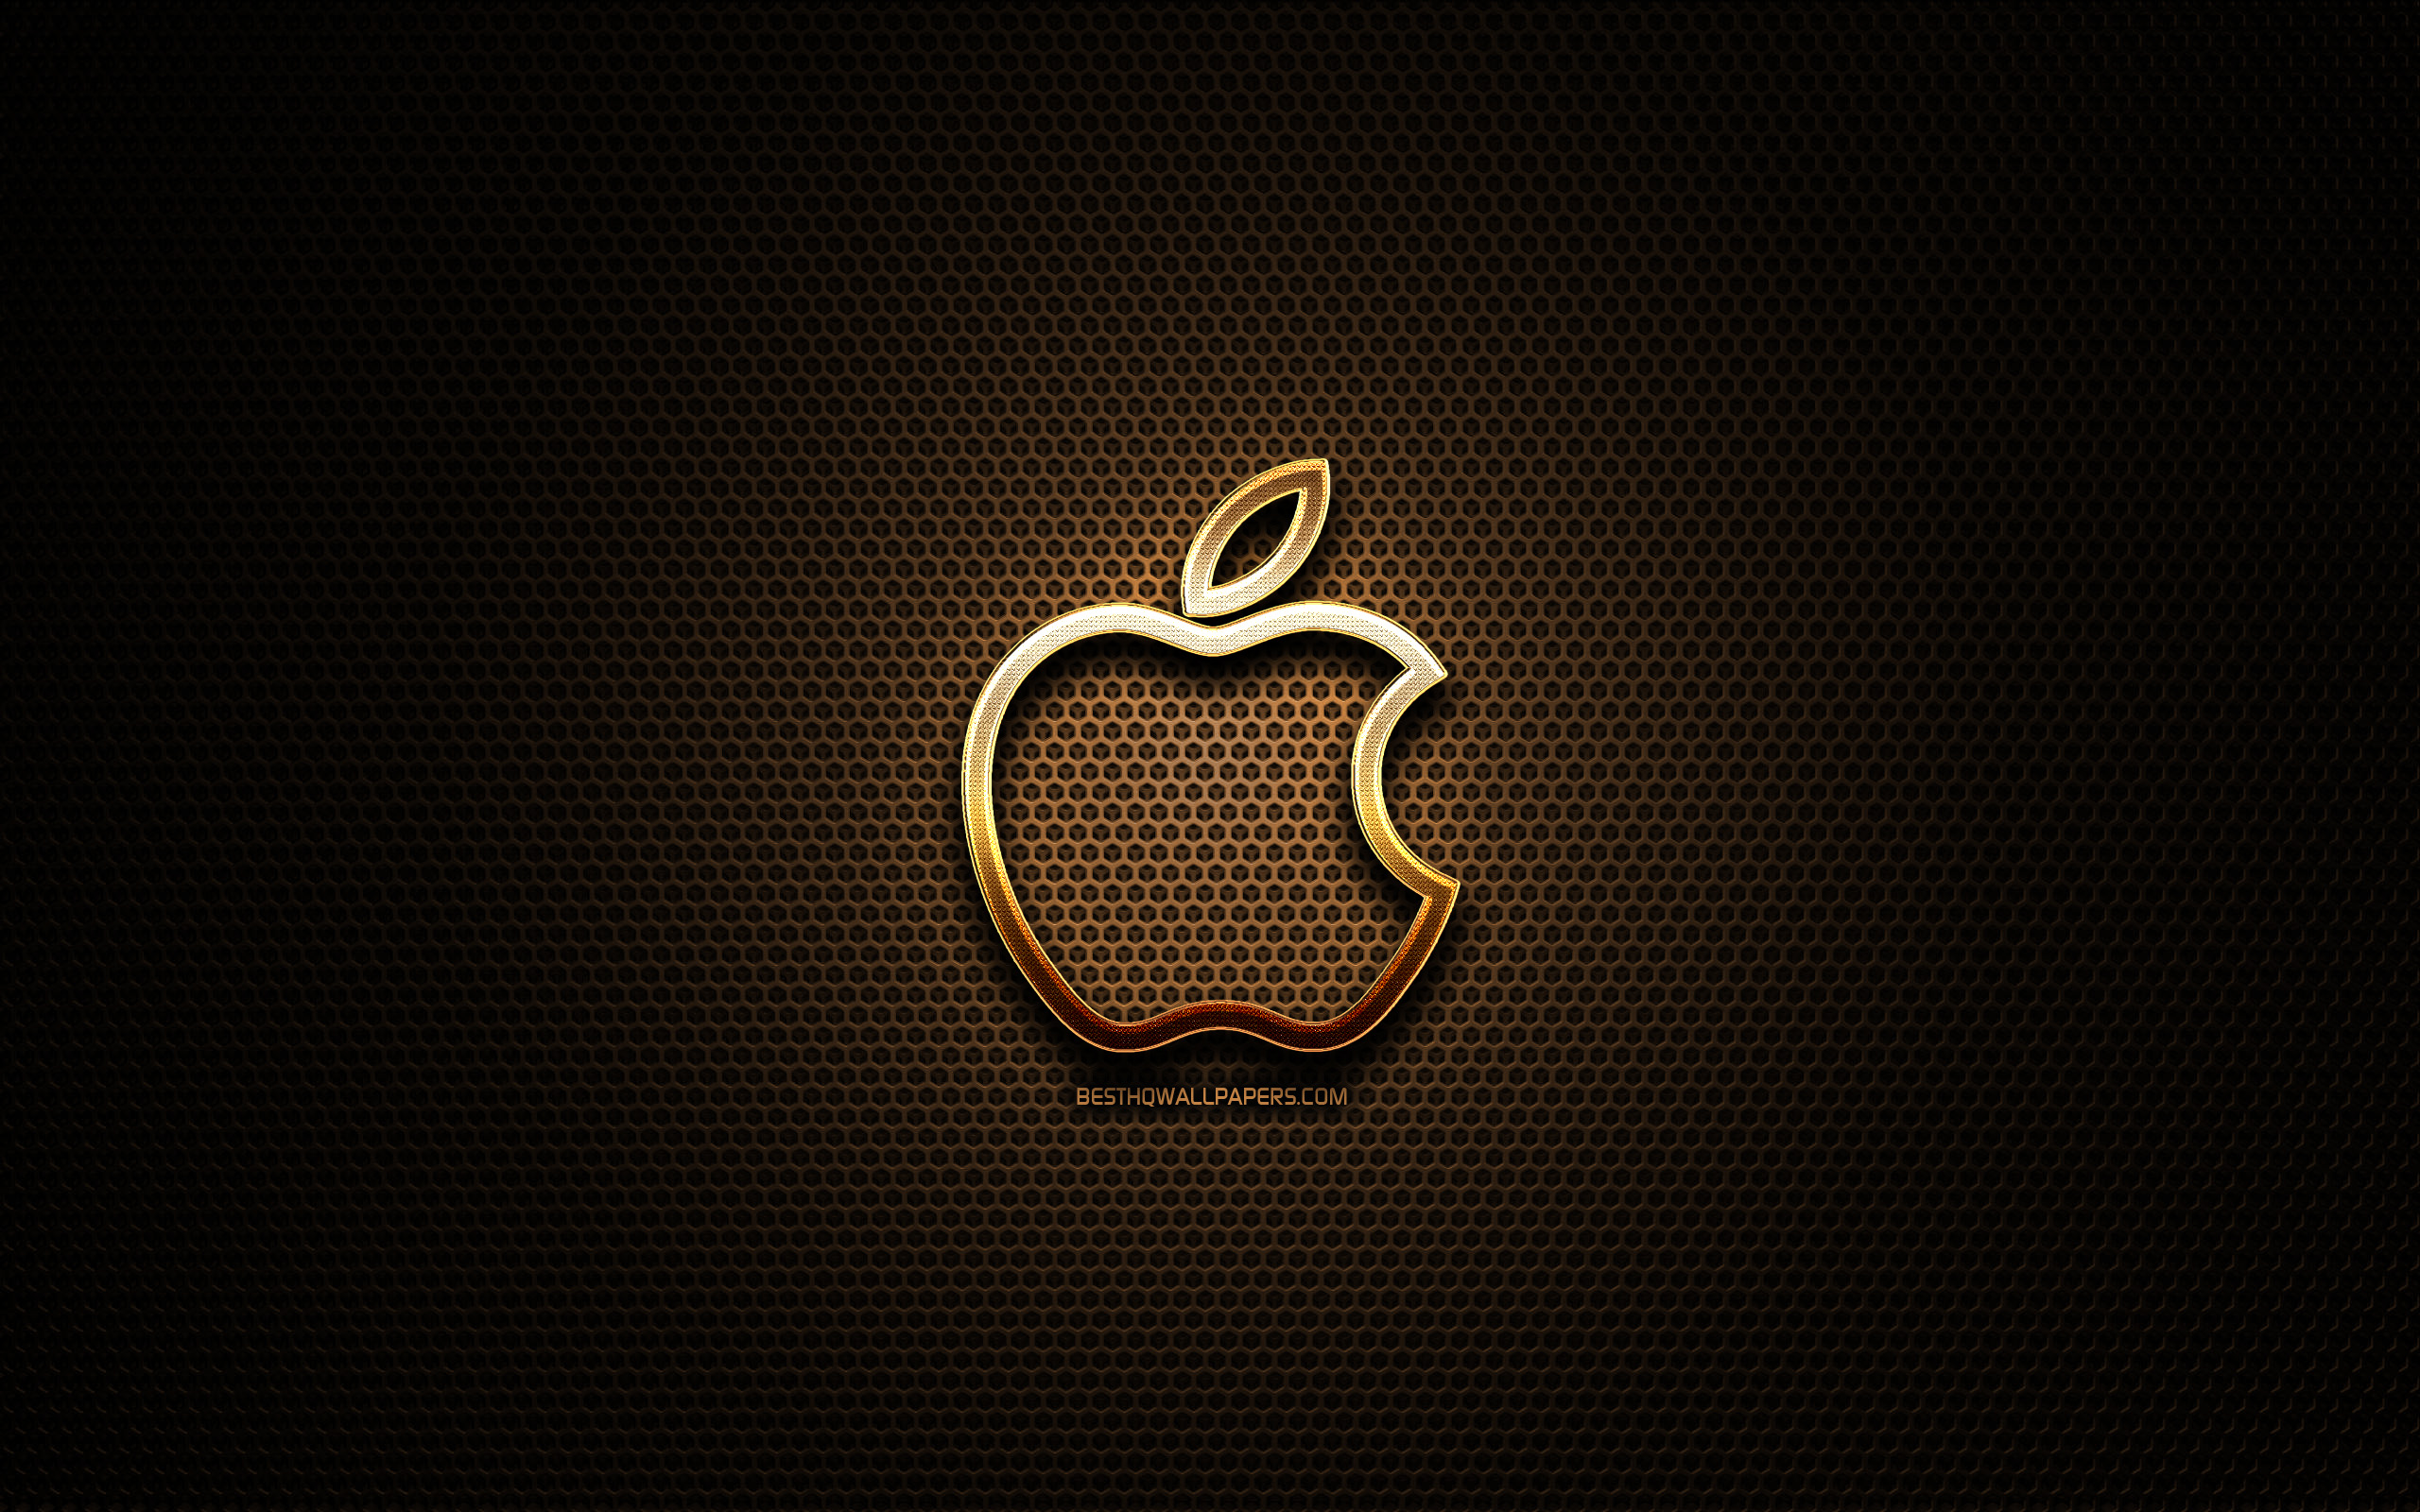 apple-linear-logo, artwork, metall gitter hintergrund apple logo, creative, apple